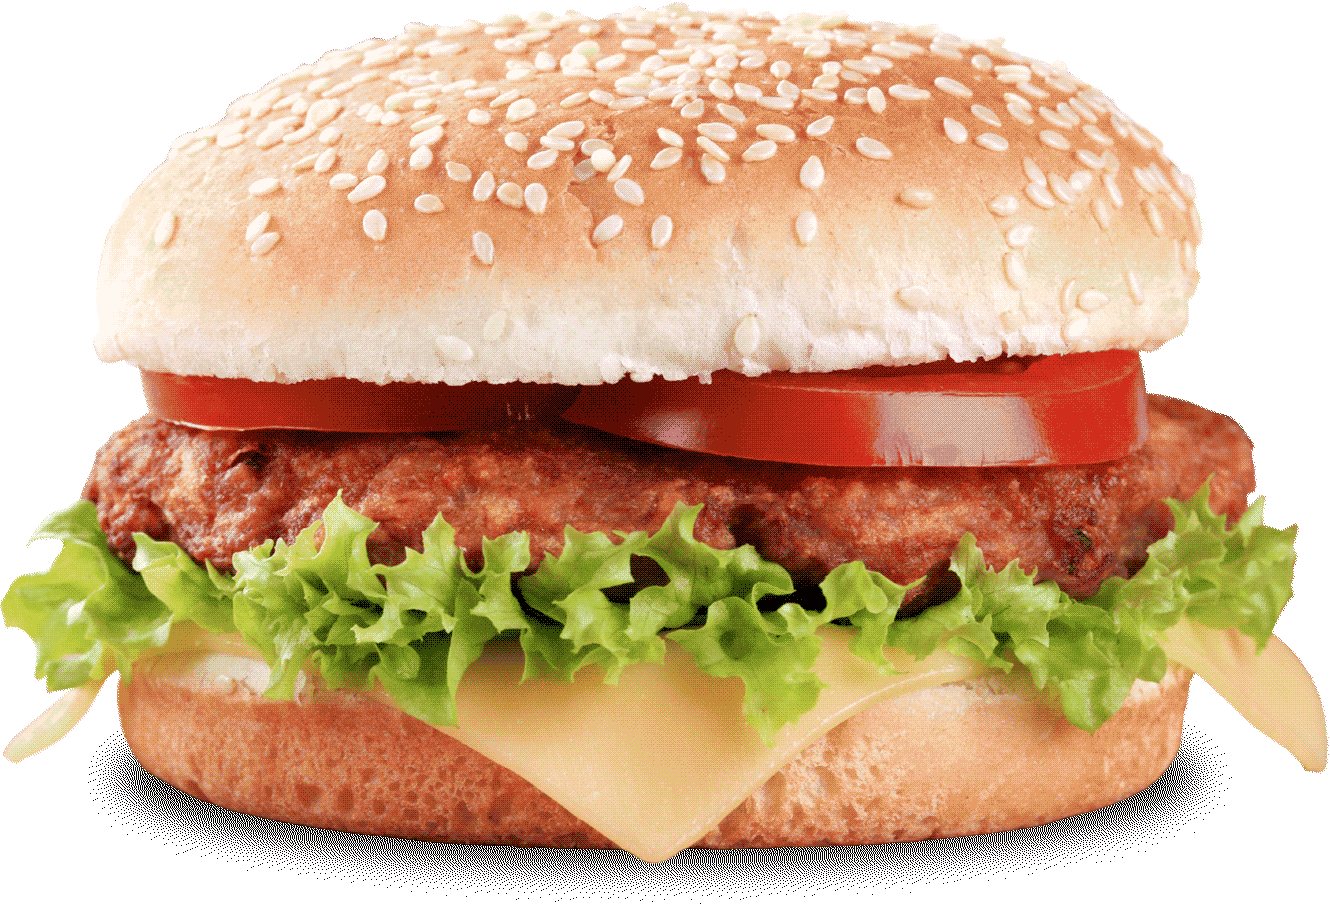 And sandwich png images. Hamburger clipart chicken burger